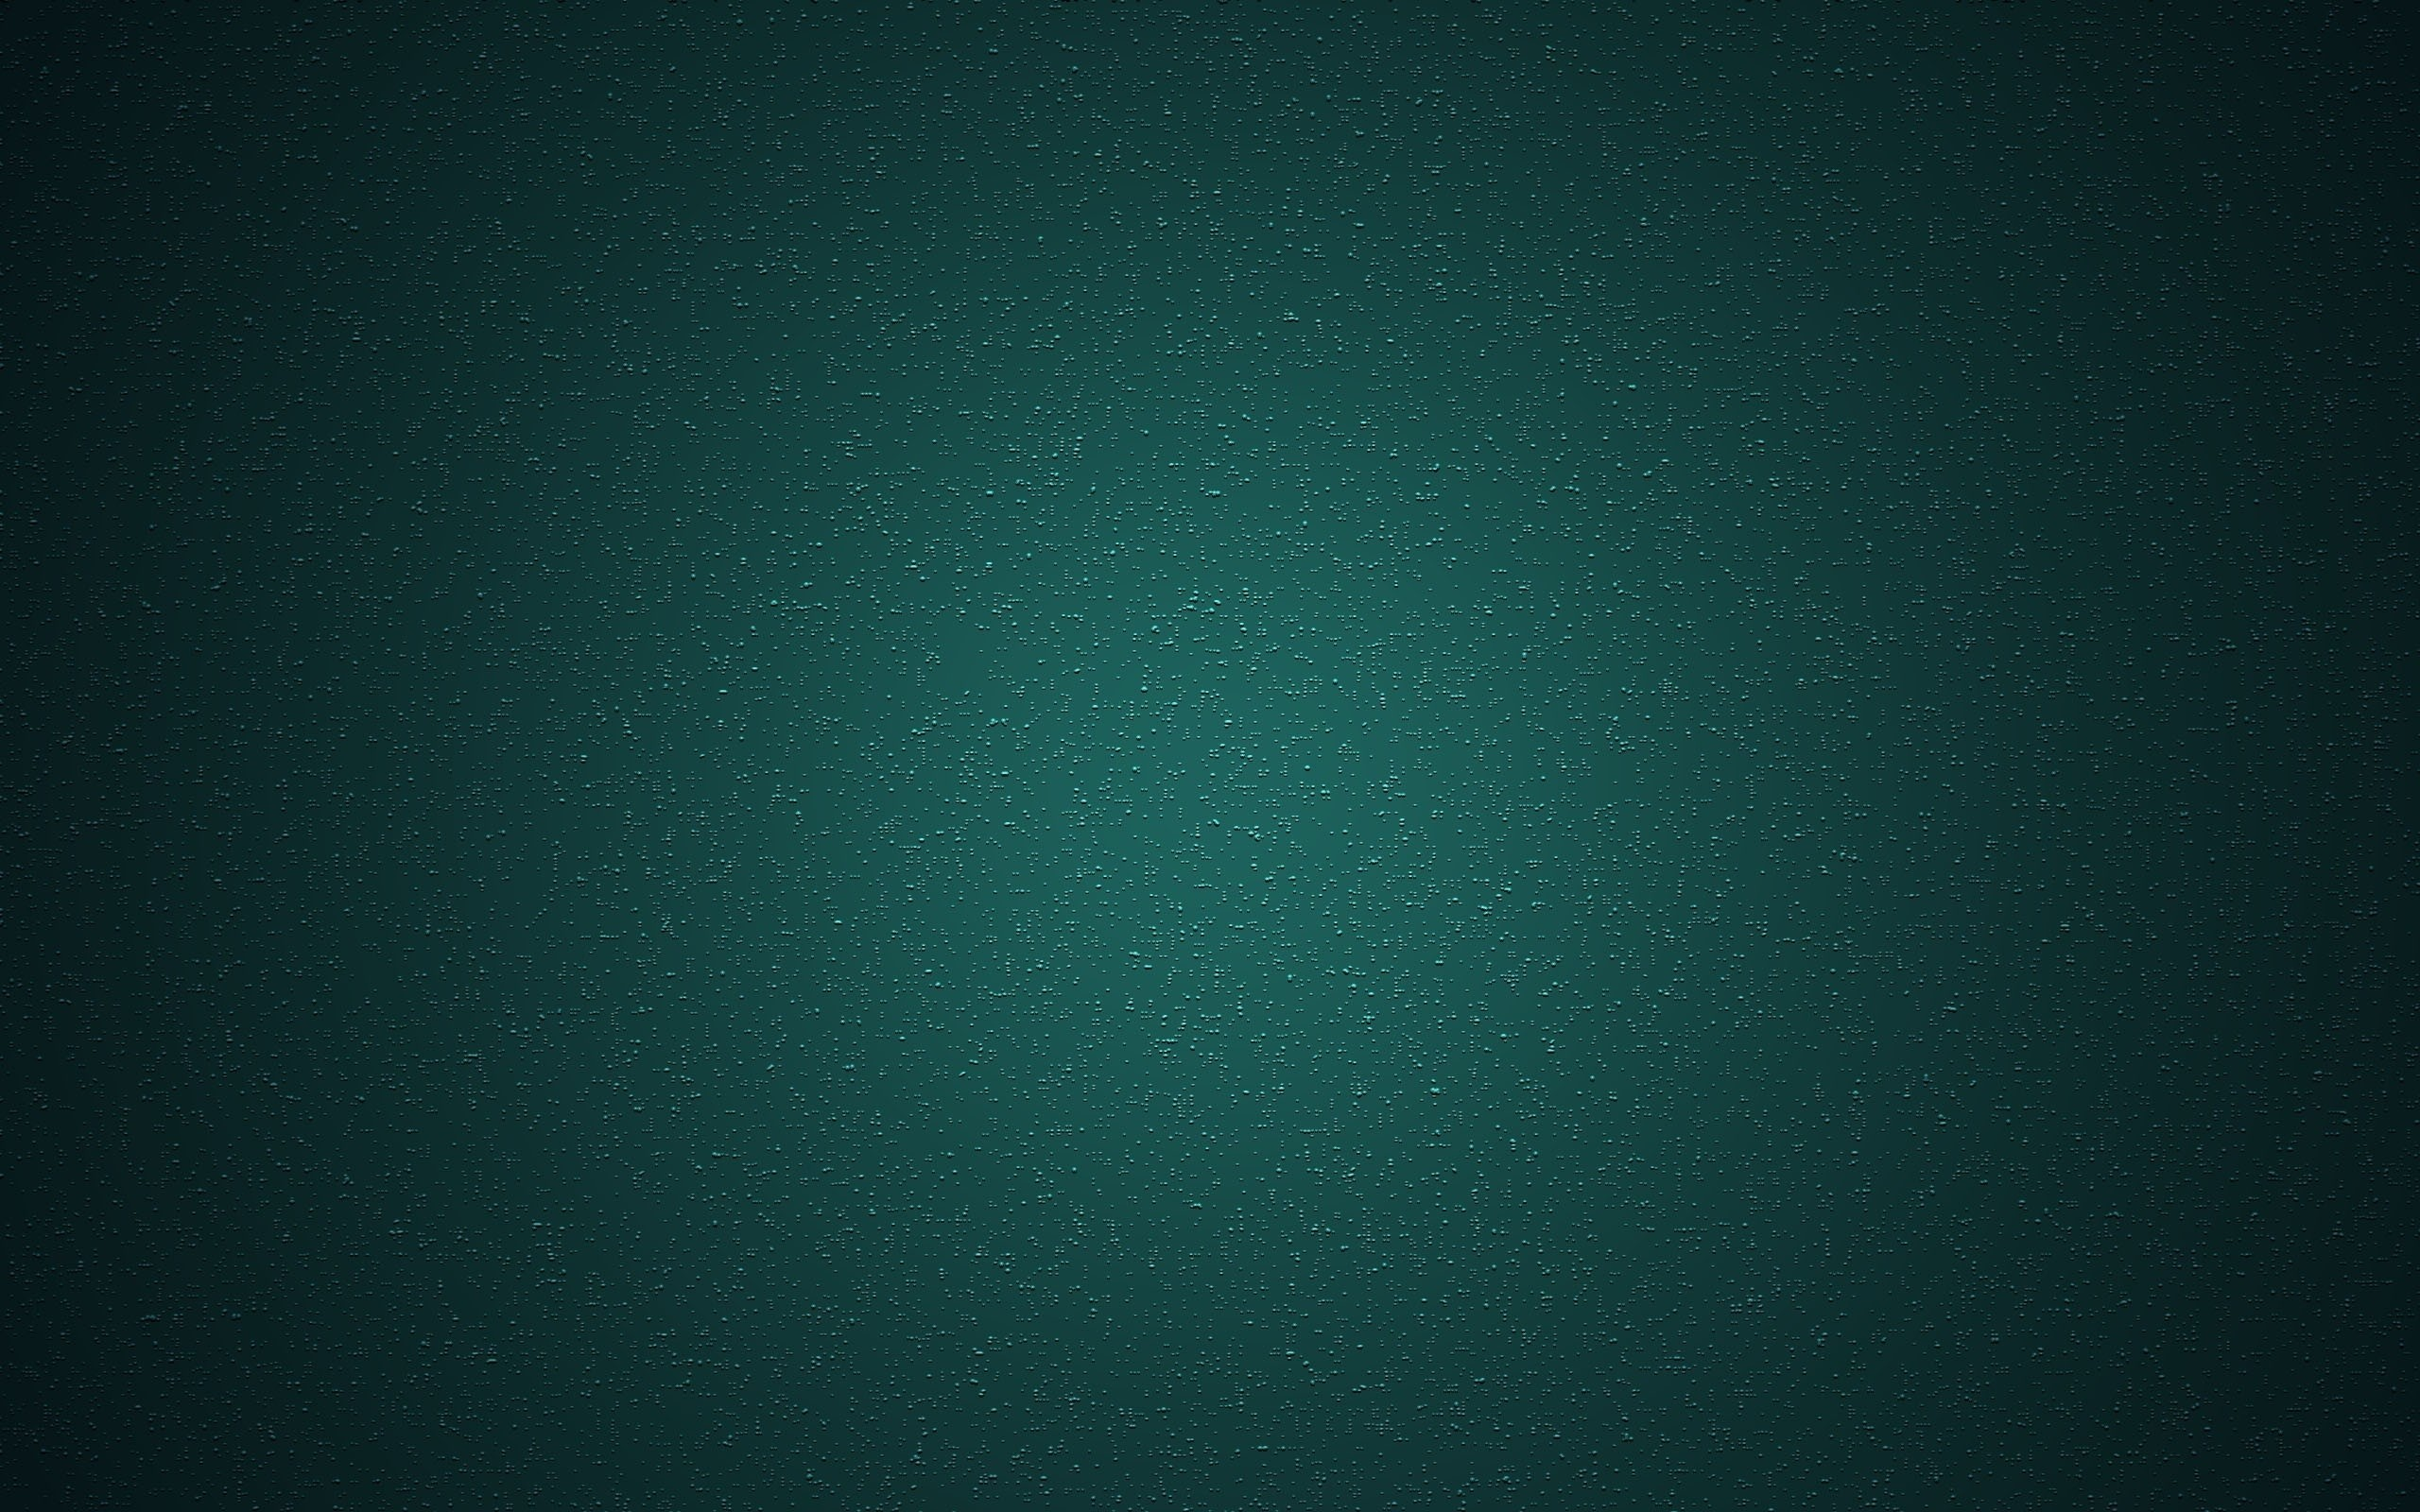 2560x1600 Dark Green Background Wallpaper Widescreen Teal For Mobile Phones Hd